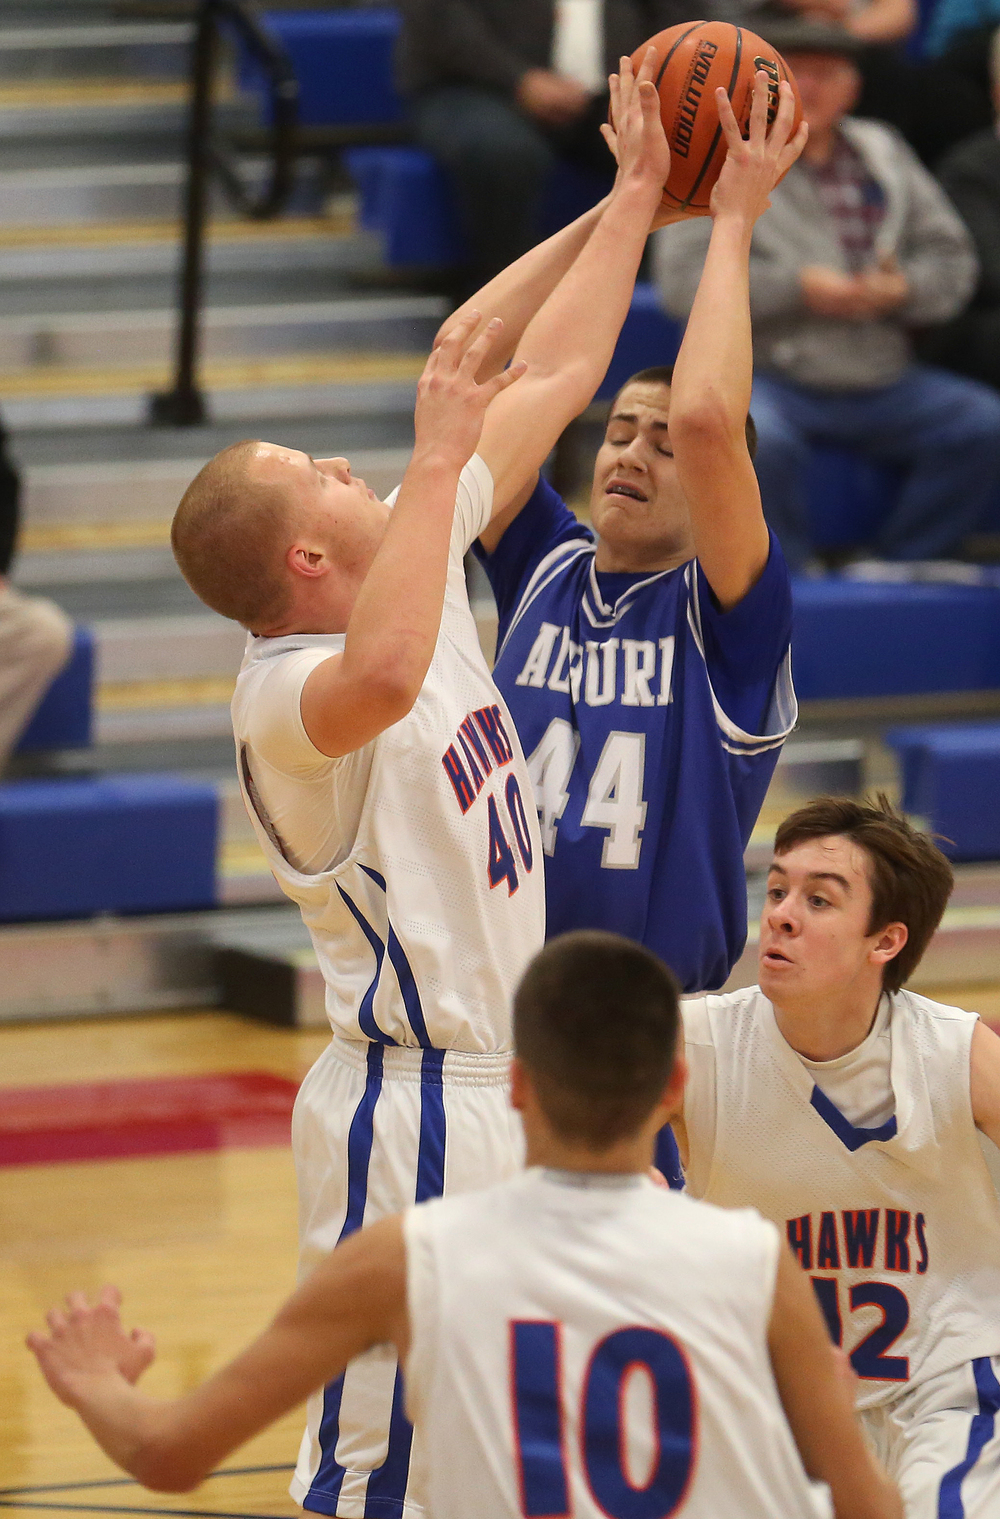 Auburn player Connor Berola fights for a rebound along with Riverton player Blake Suhling at left. Auburn defeated Riverton 55-52 in boys quarterfinal action at the Sangamon County Basketball Tournament at Cass gymnasium at Lincoln Land Community College in Springfield on Tuesday evening, Jan. 13, 2015. David Spencer/The State Journal-Register